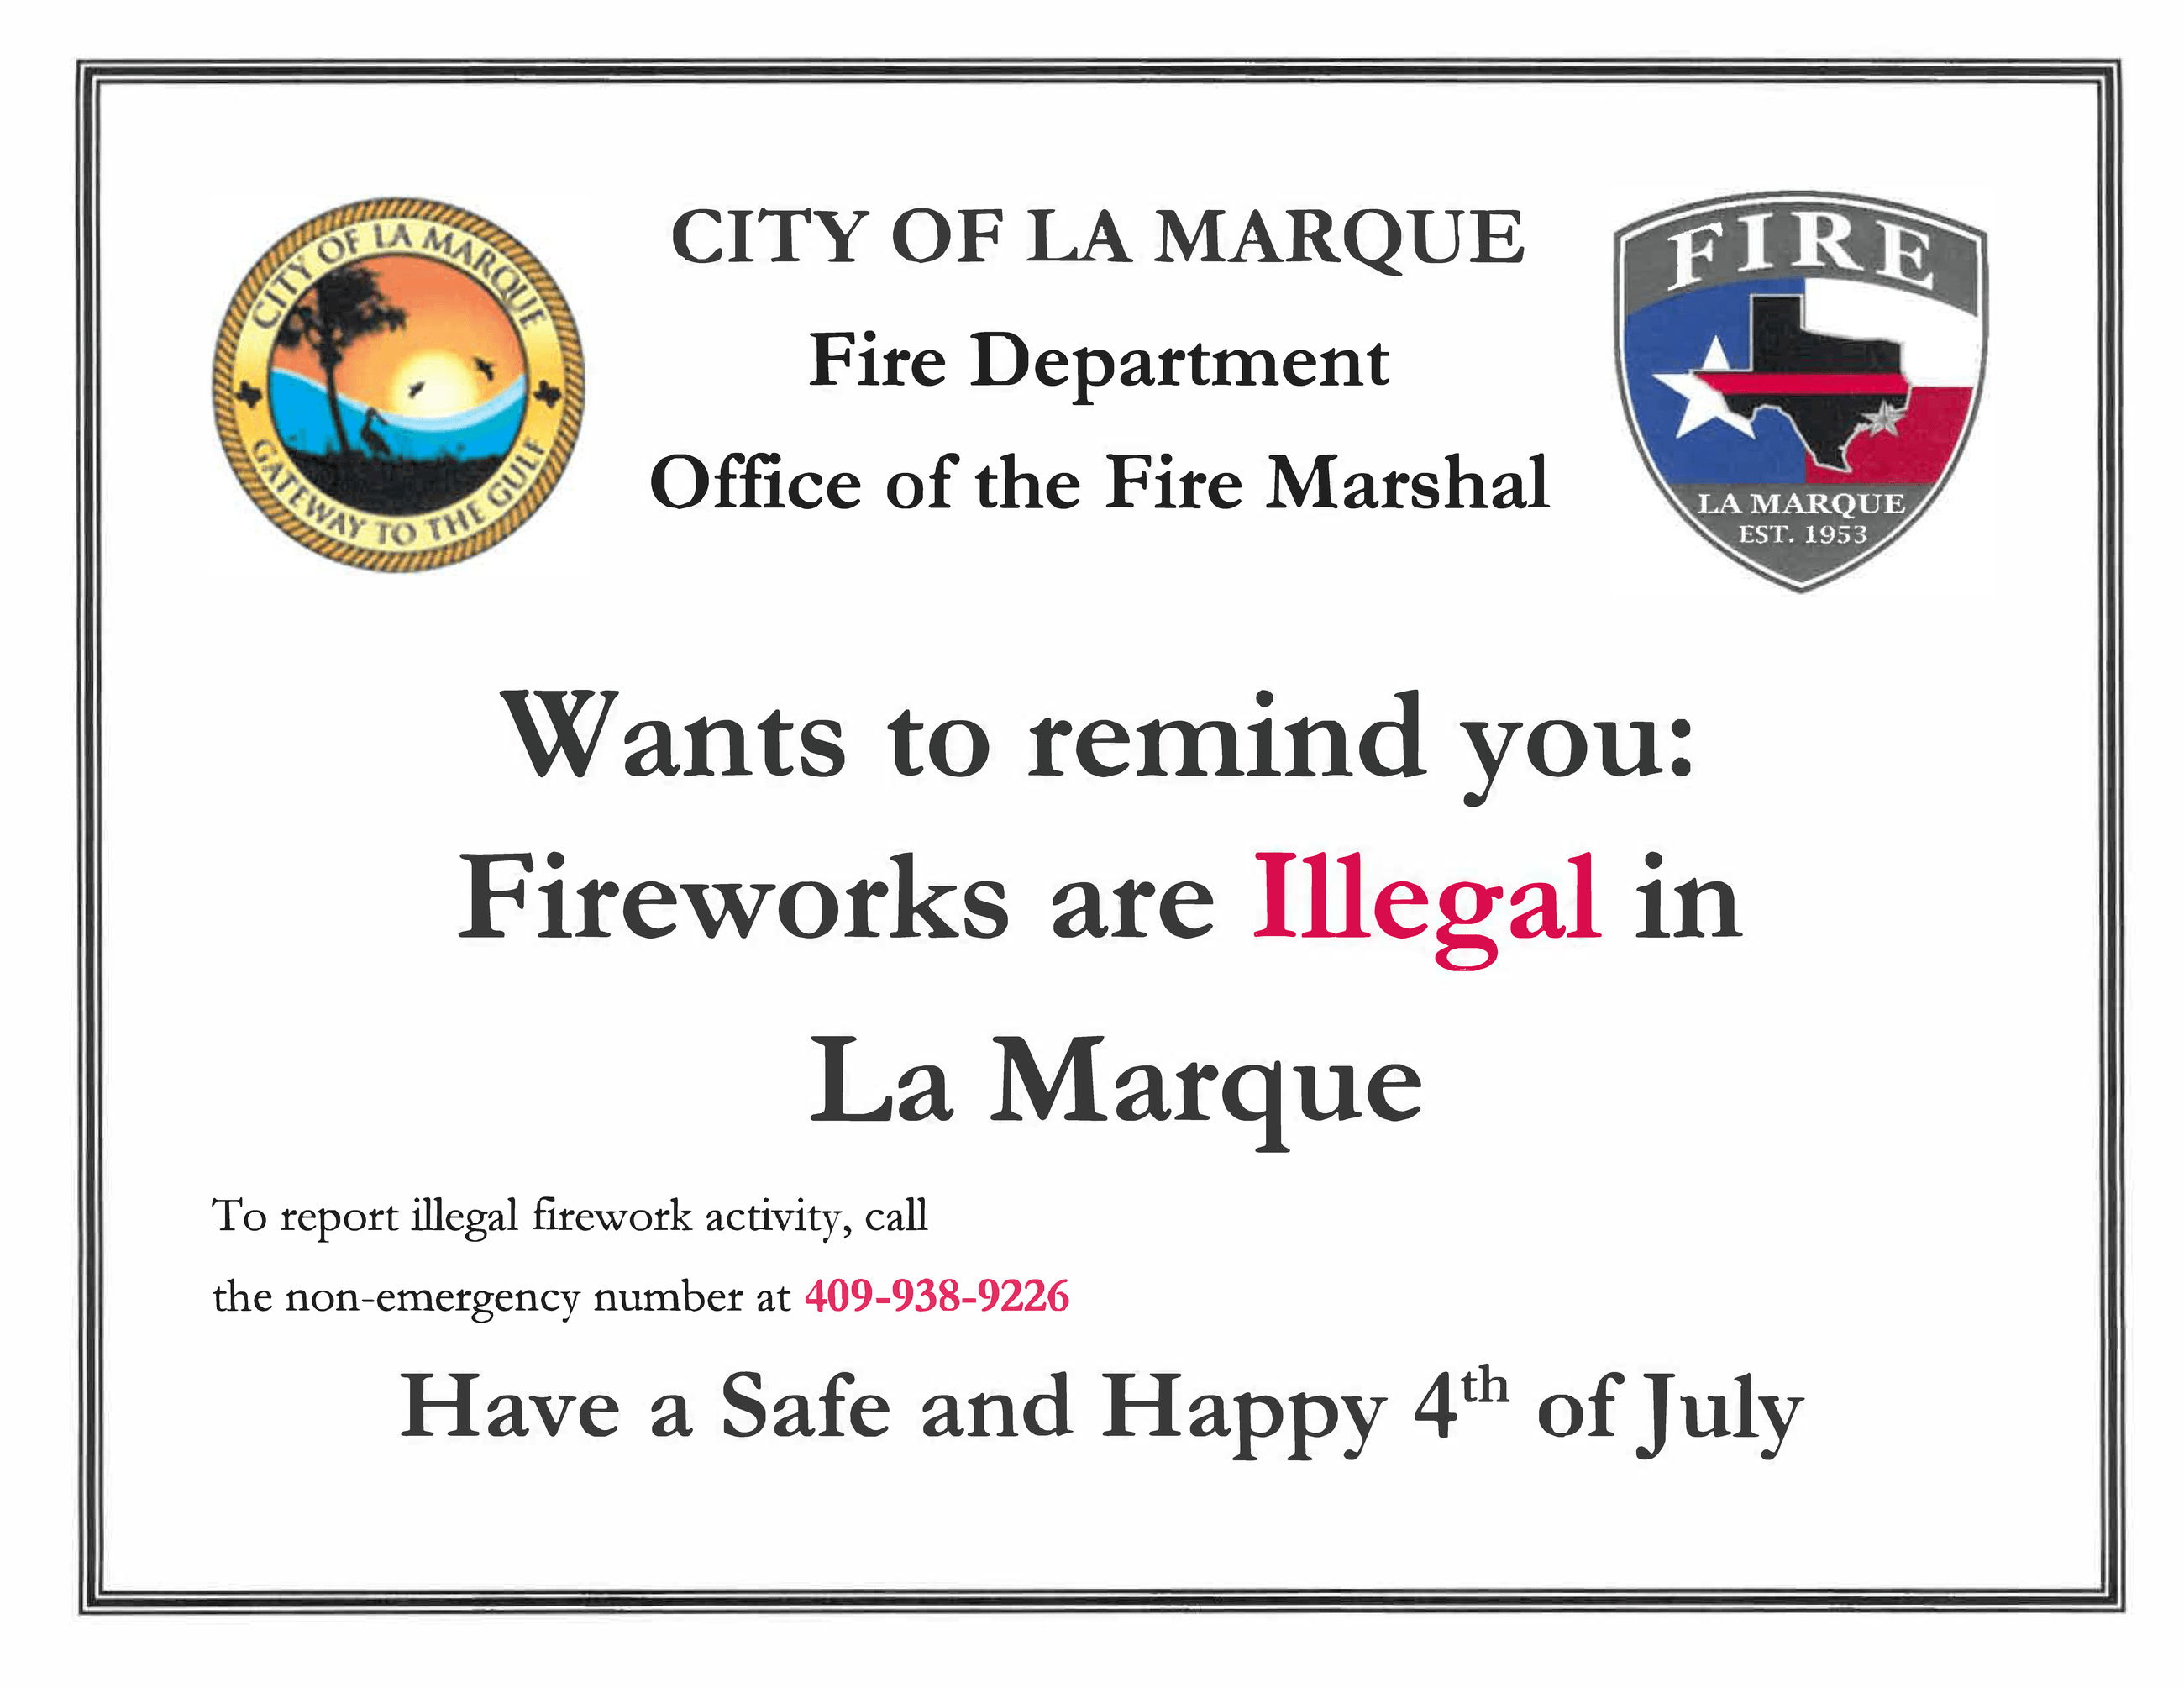 Fire works prohibited 4th of july NOTICE